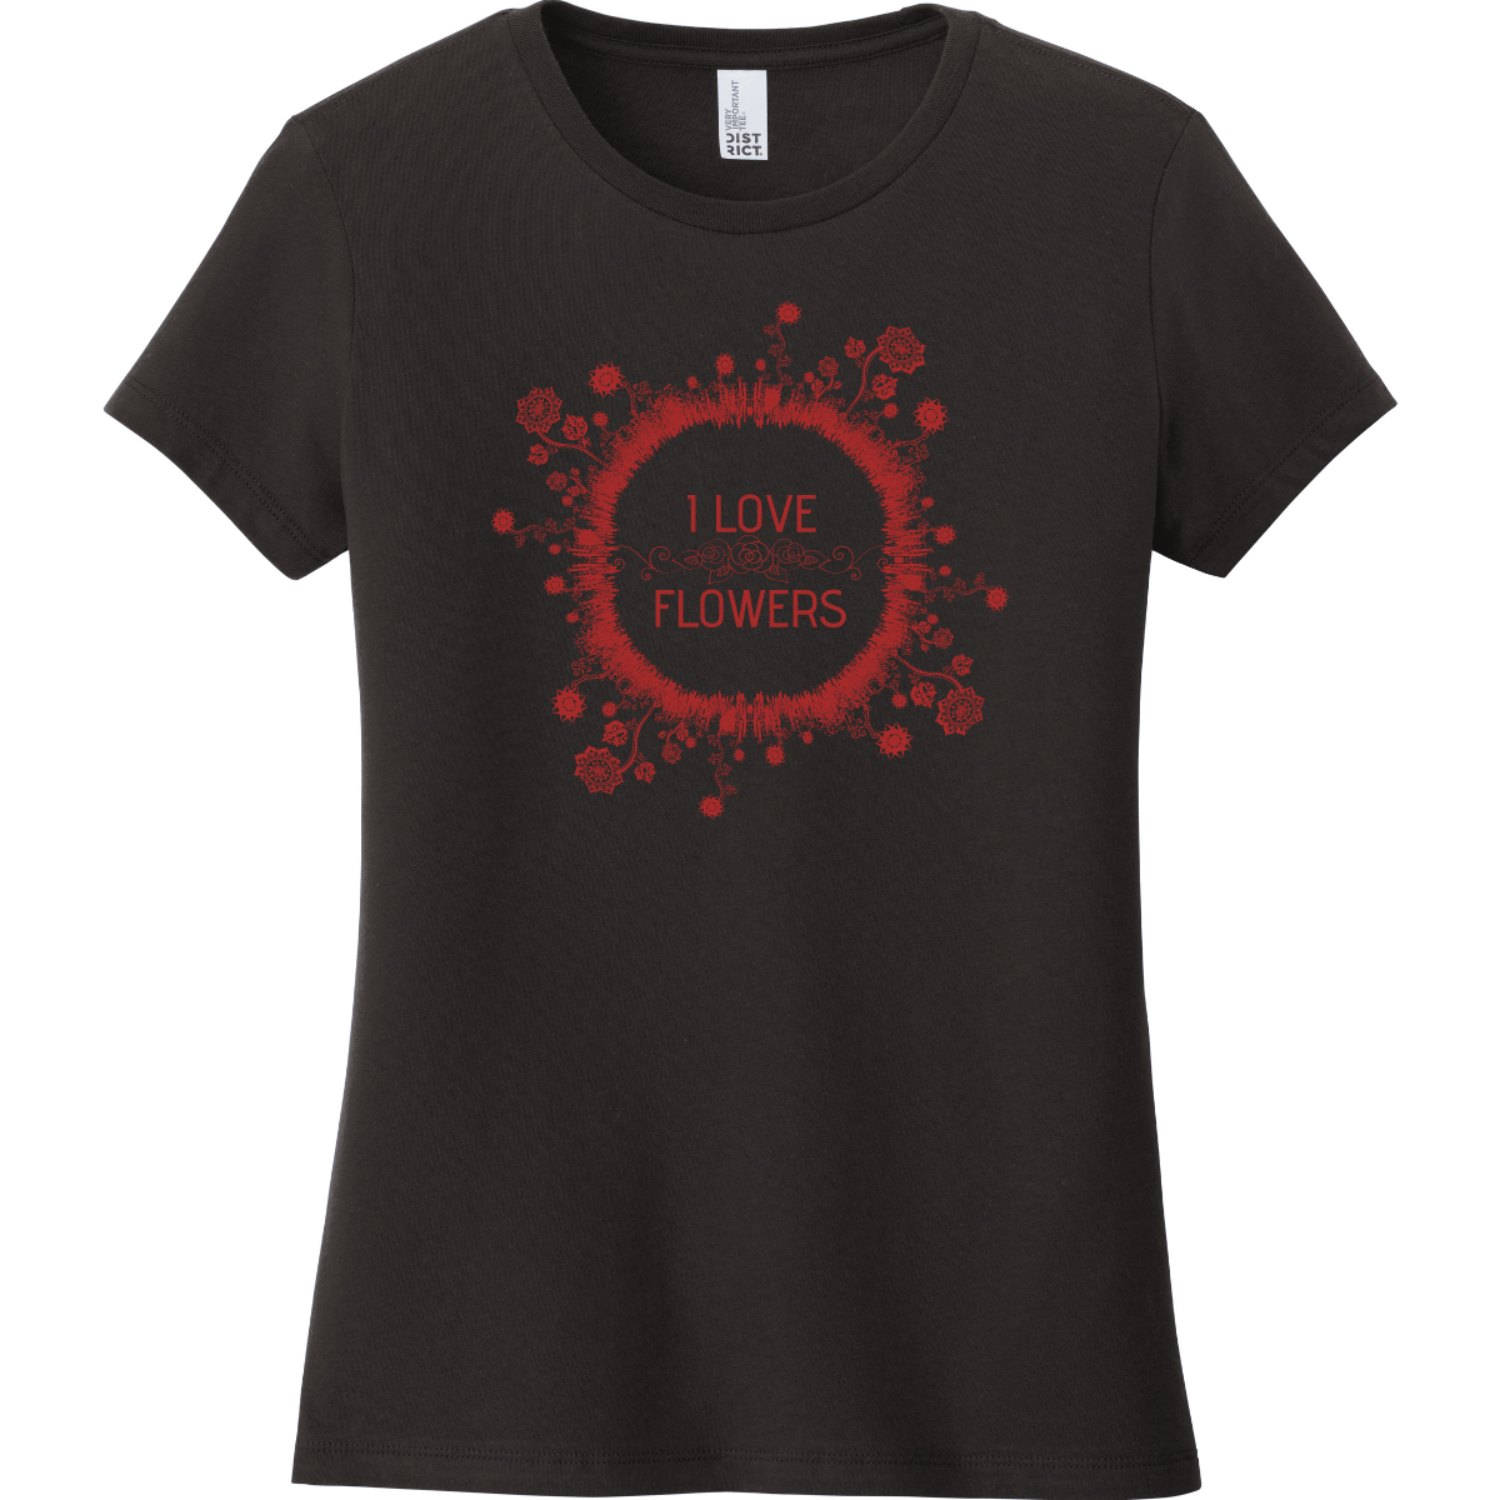 I Love Flowers T-Shirt For Women Black District Women's Very Important Tee DT6002